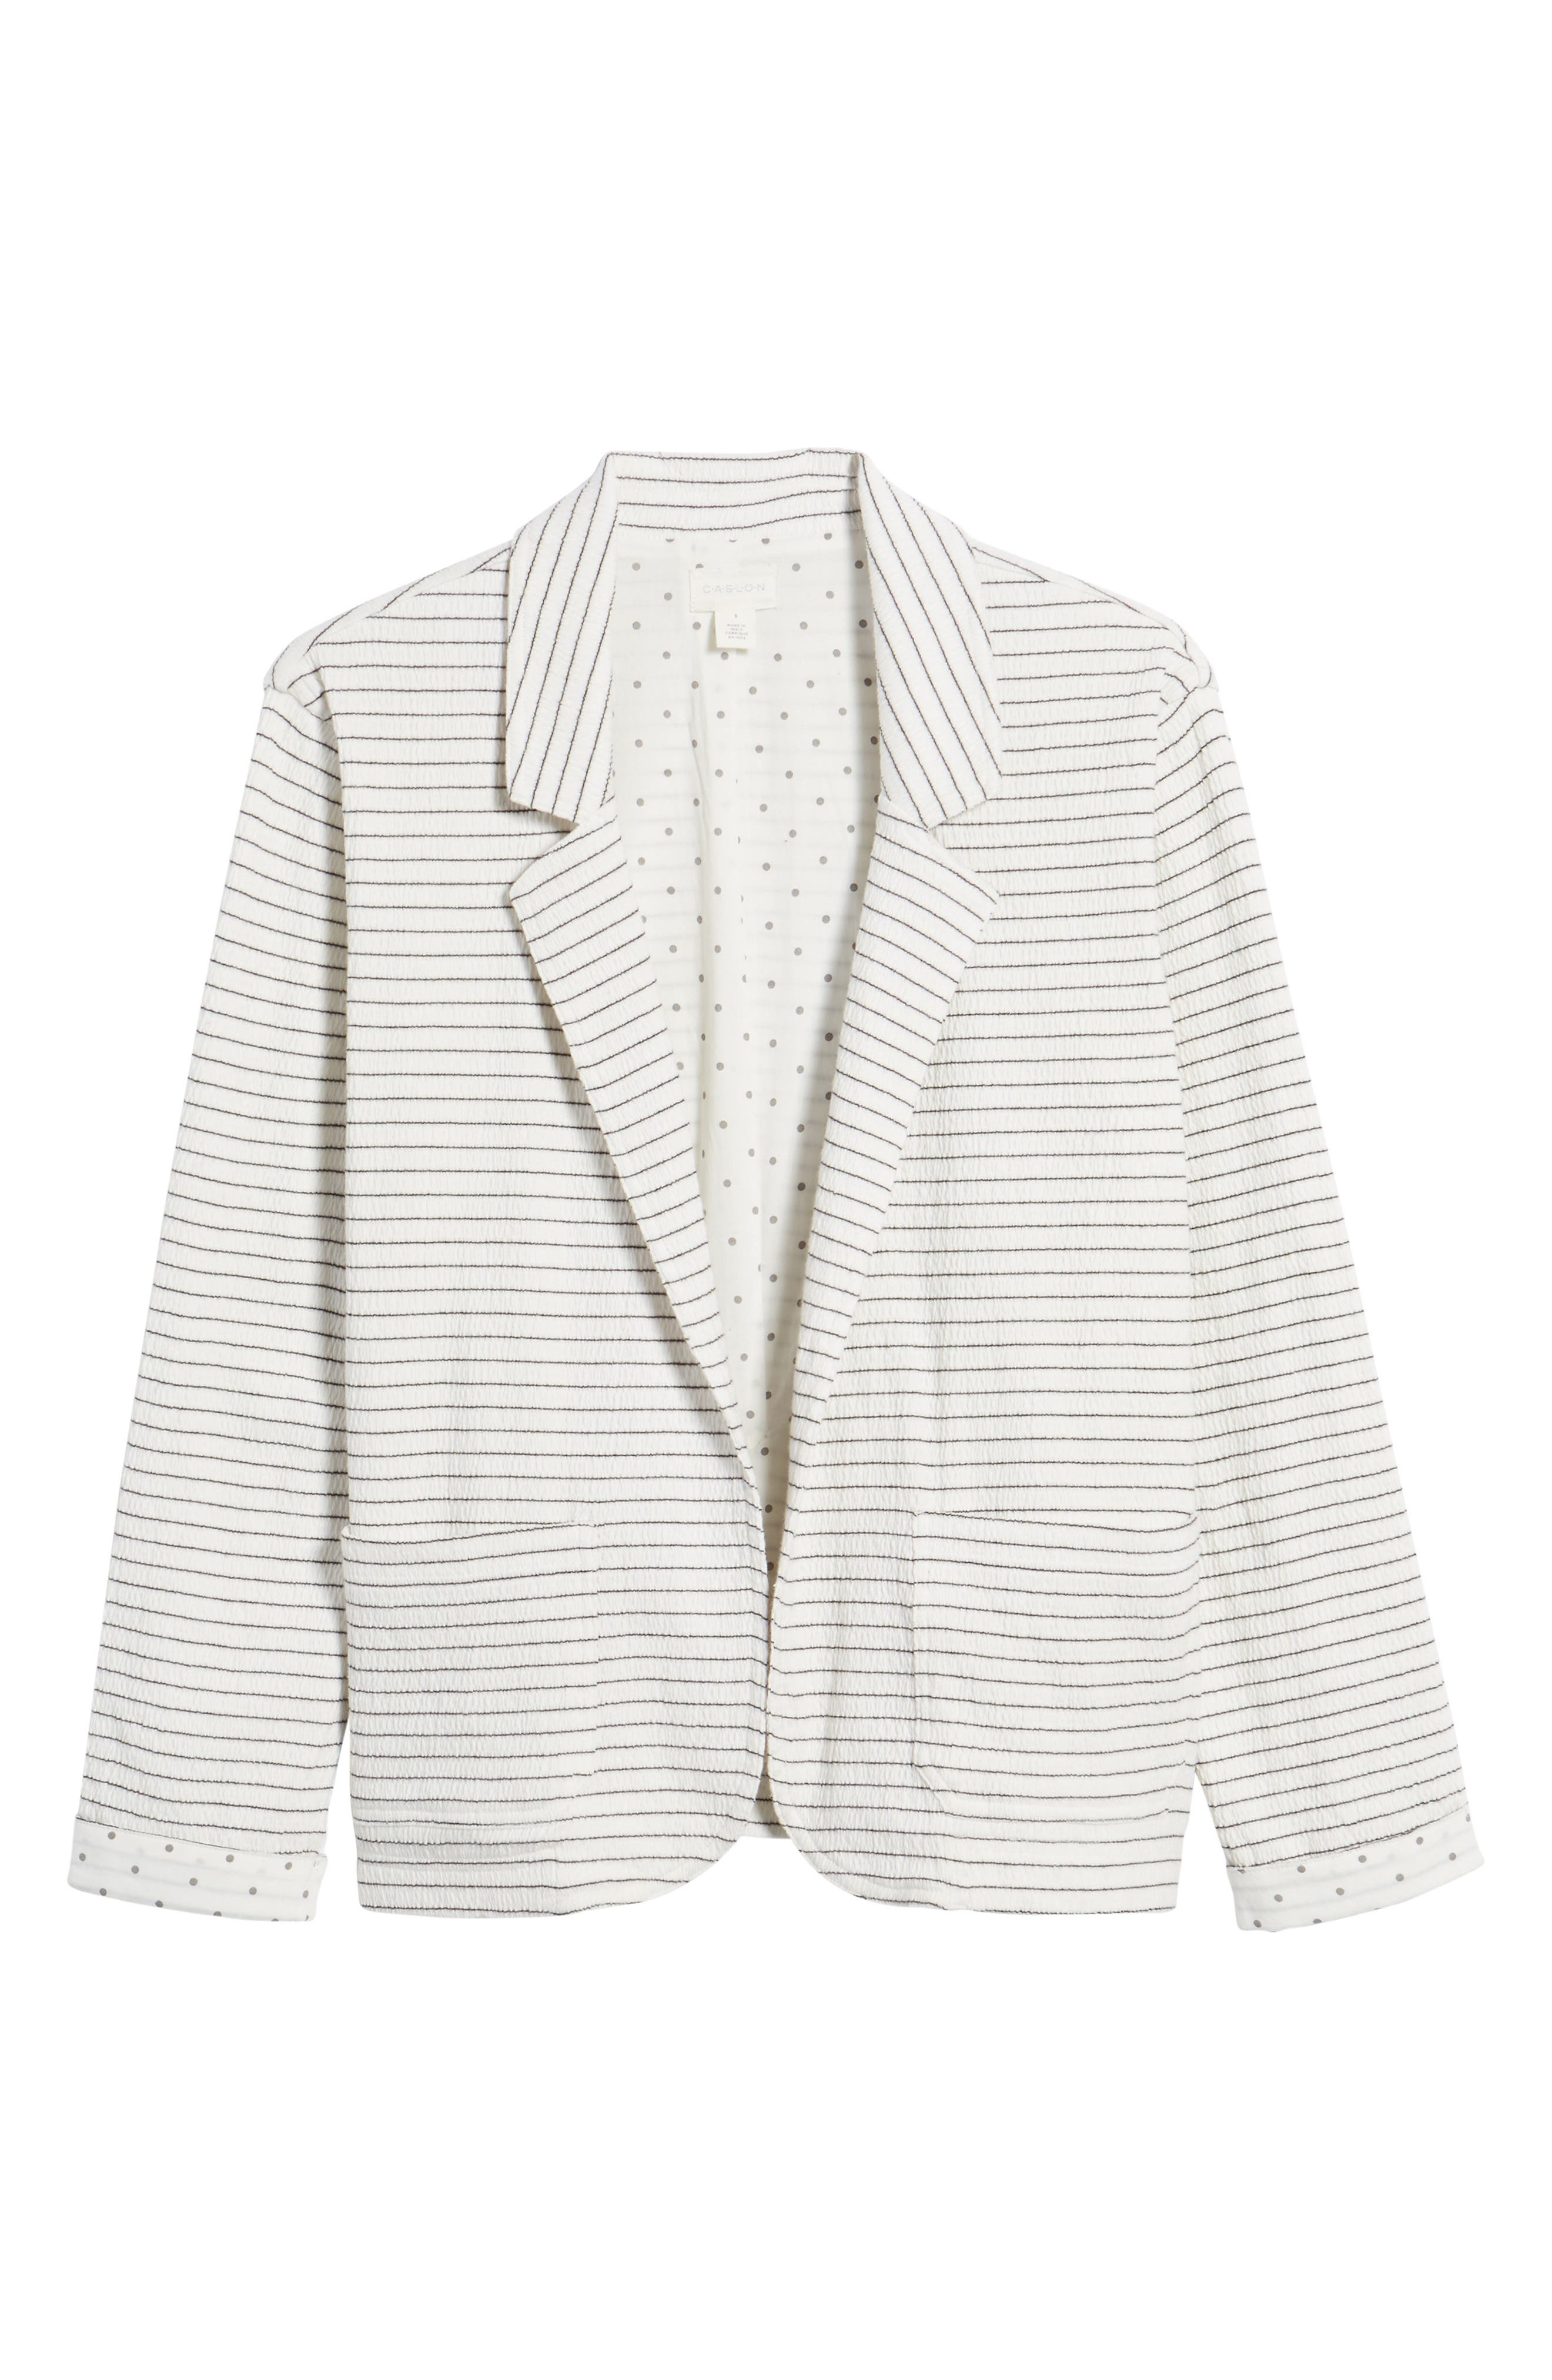 Crinkle Stretch Cotton Lined Blazer,                             Alternate thumbnail 6, color,                             Ivory- Black Stripe